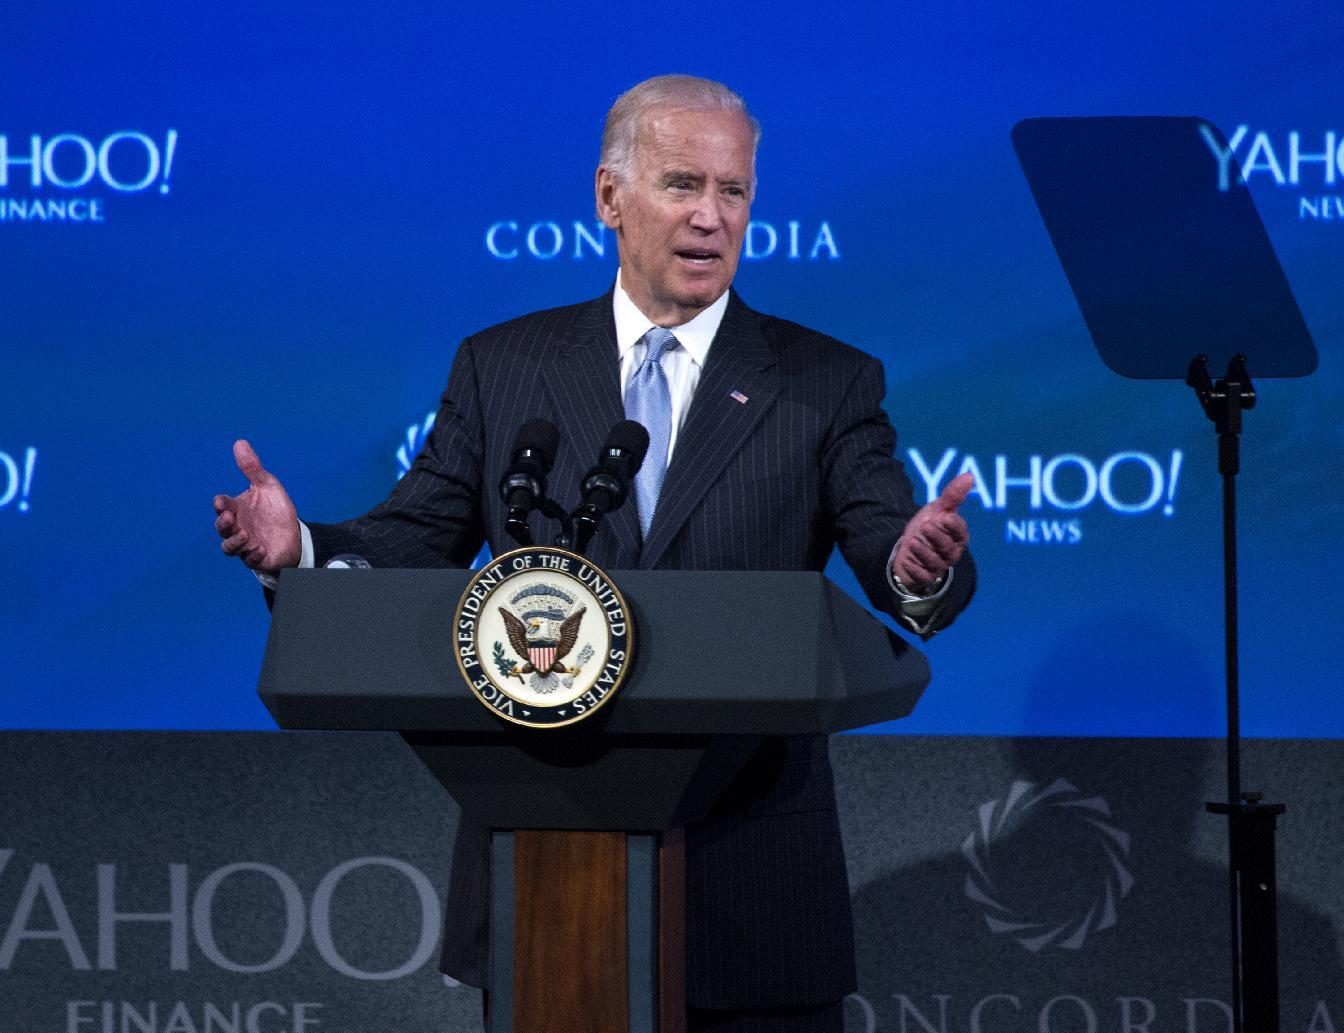 Biden backing Asia trade pact despite union opposition